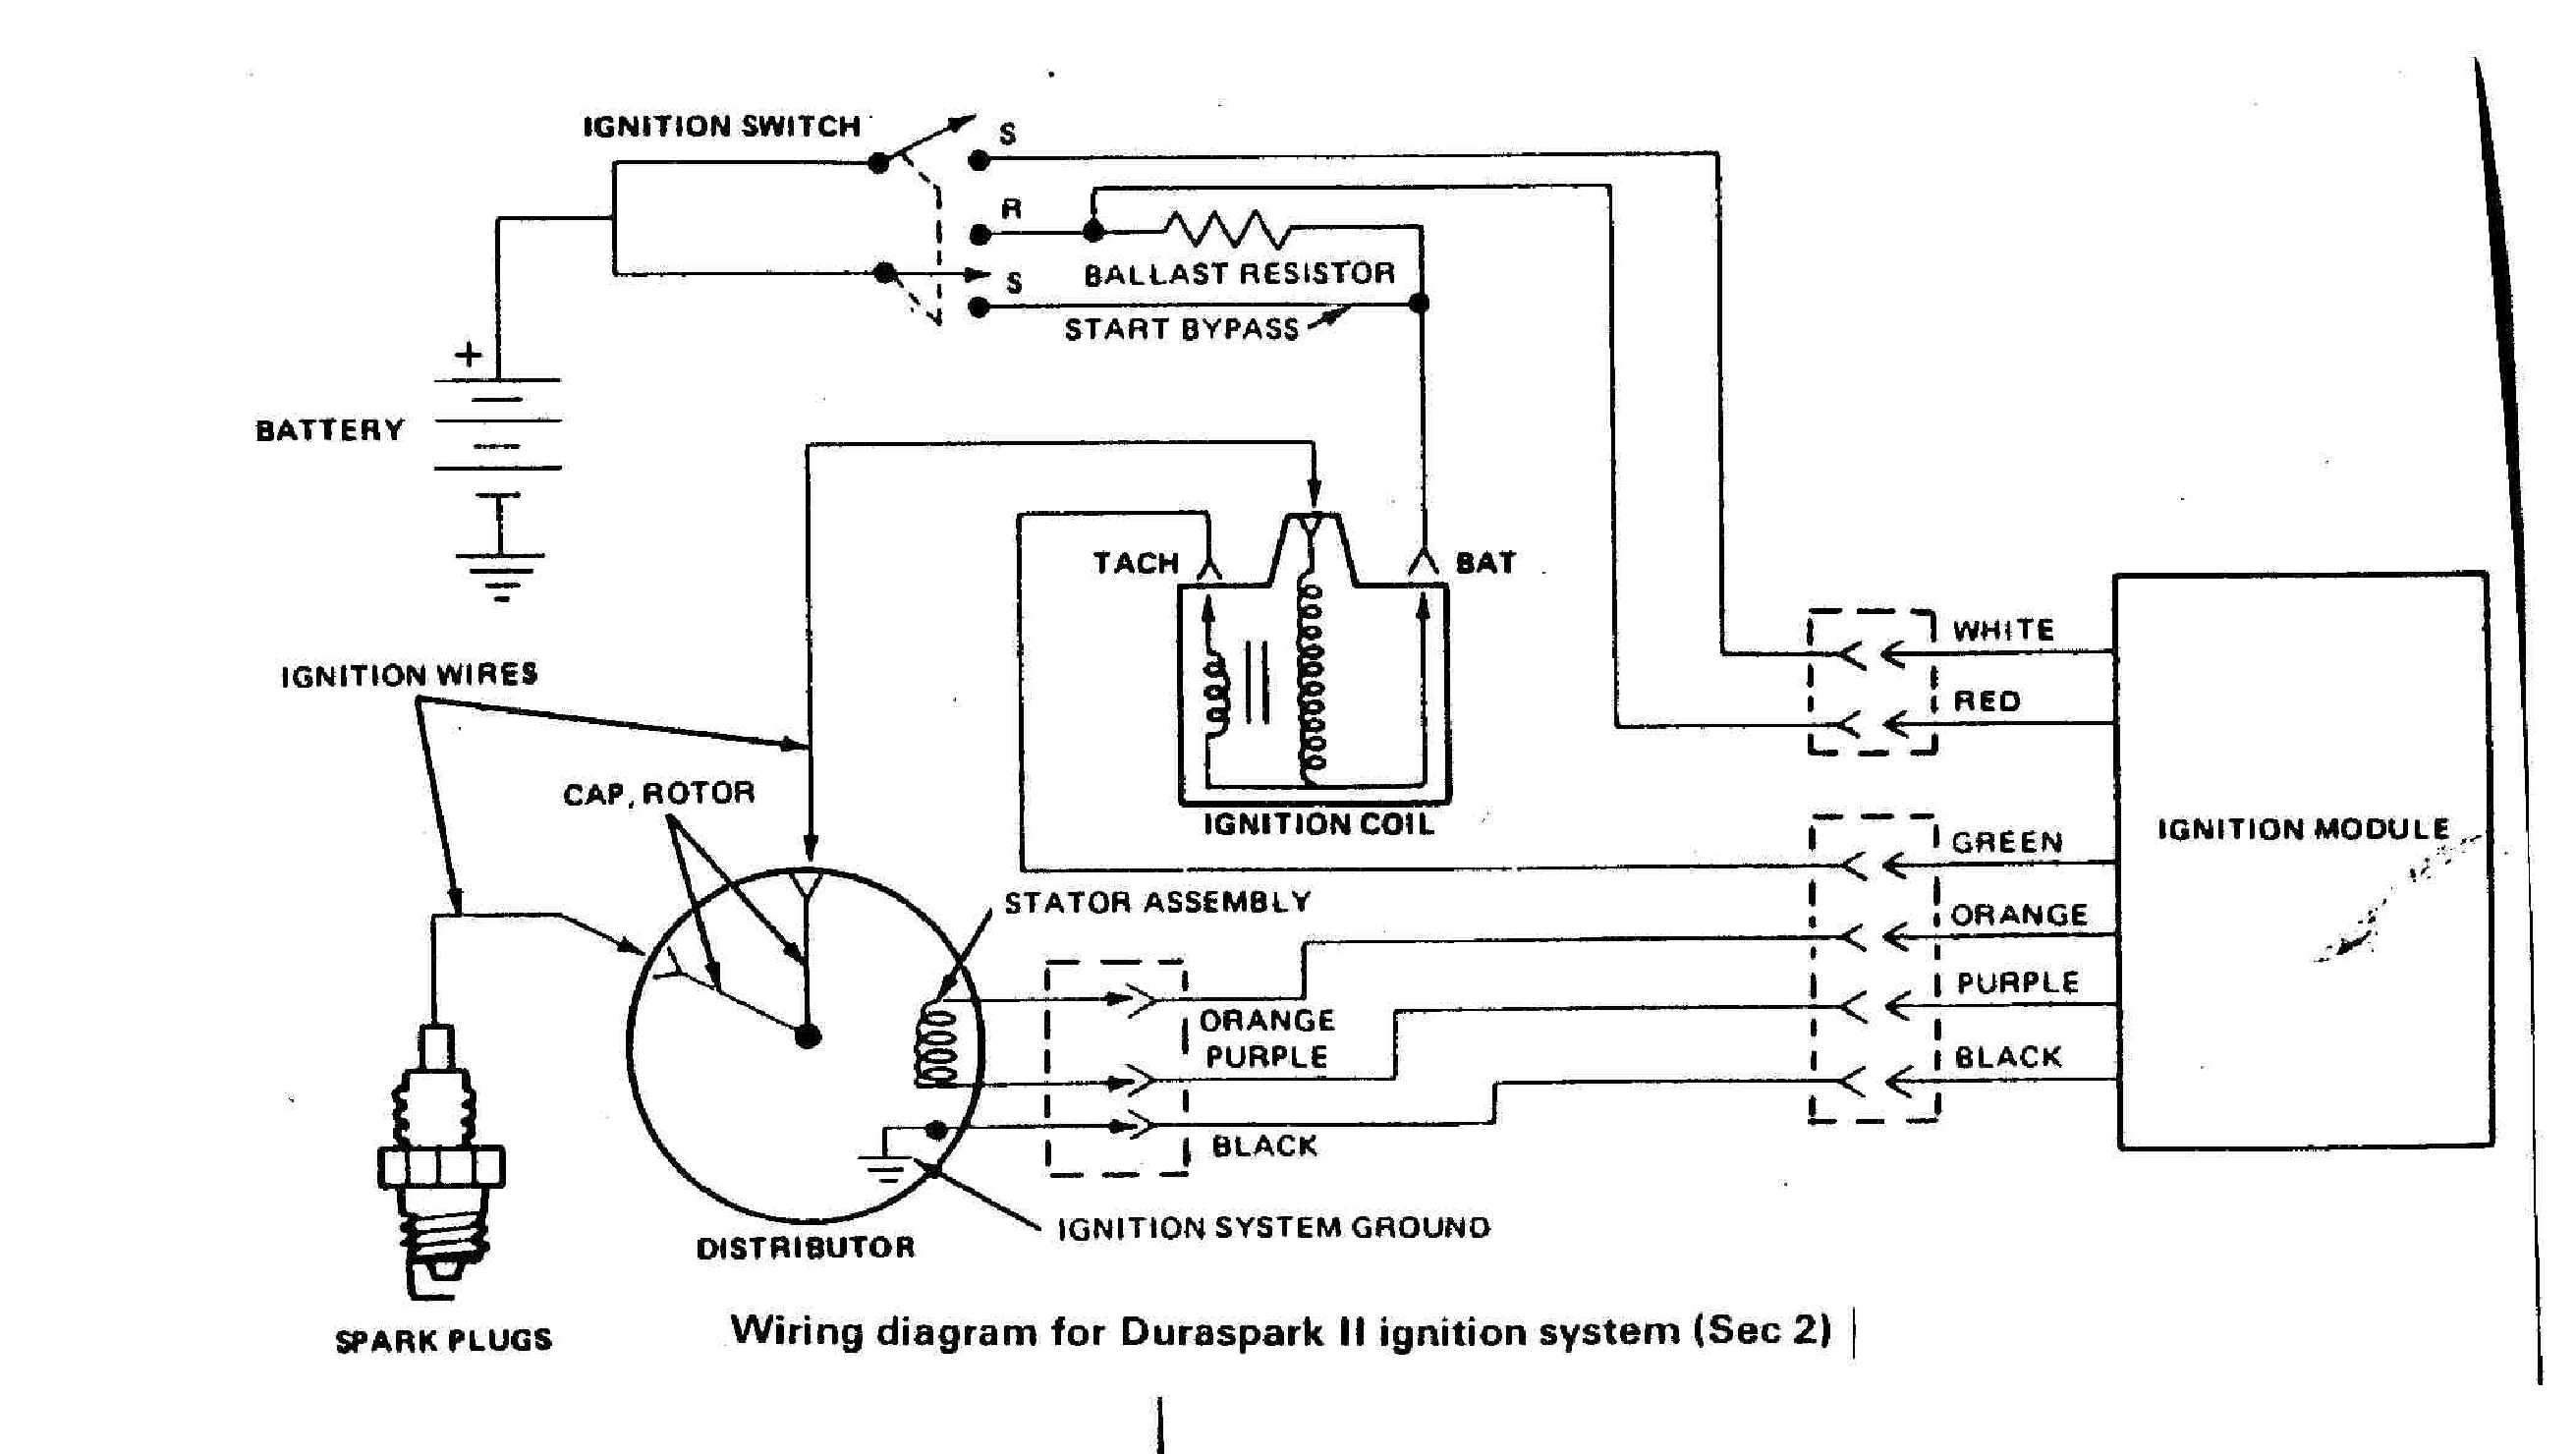 wrg 7679 ultima wiring harness rh 74 nano fm nl ultima single fire ignition wiring diagram ultima alternator wiring diagram